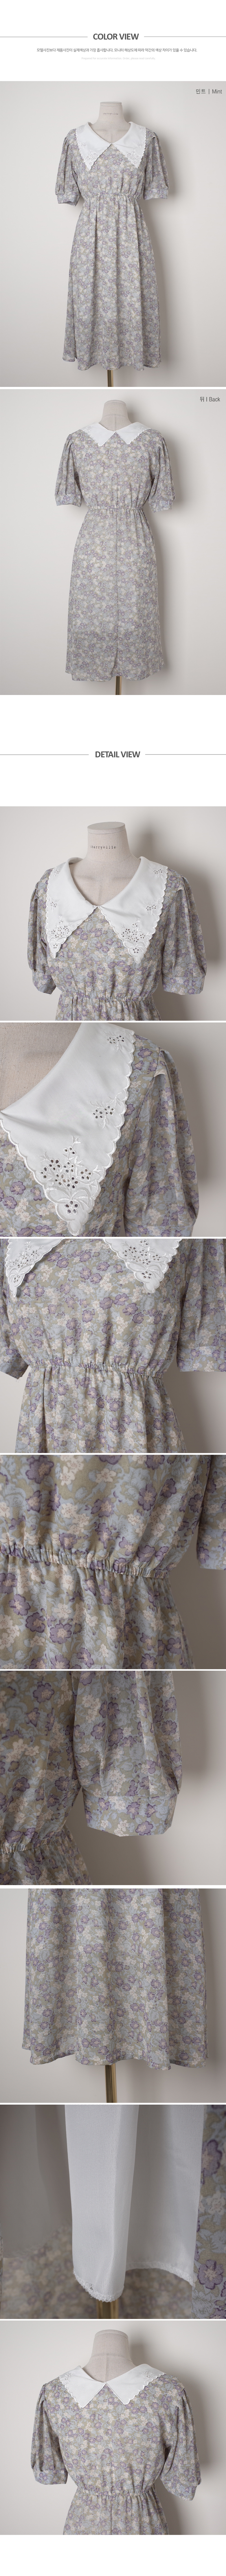 Embroidered collar dress like a gift